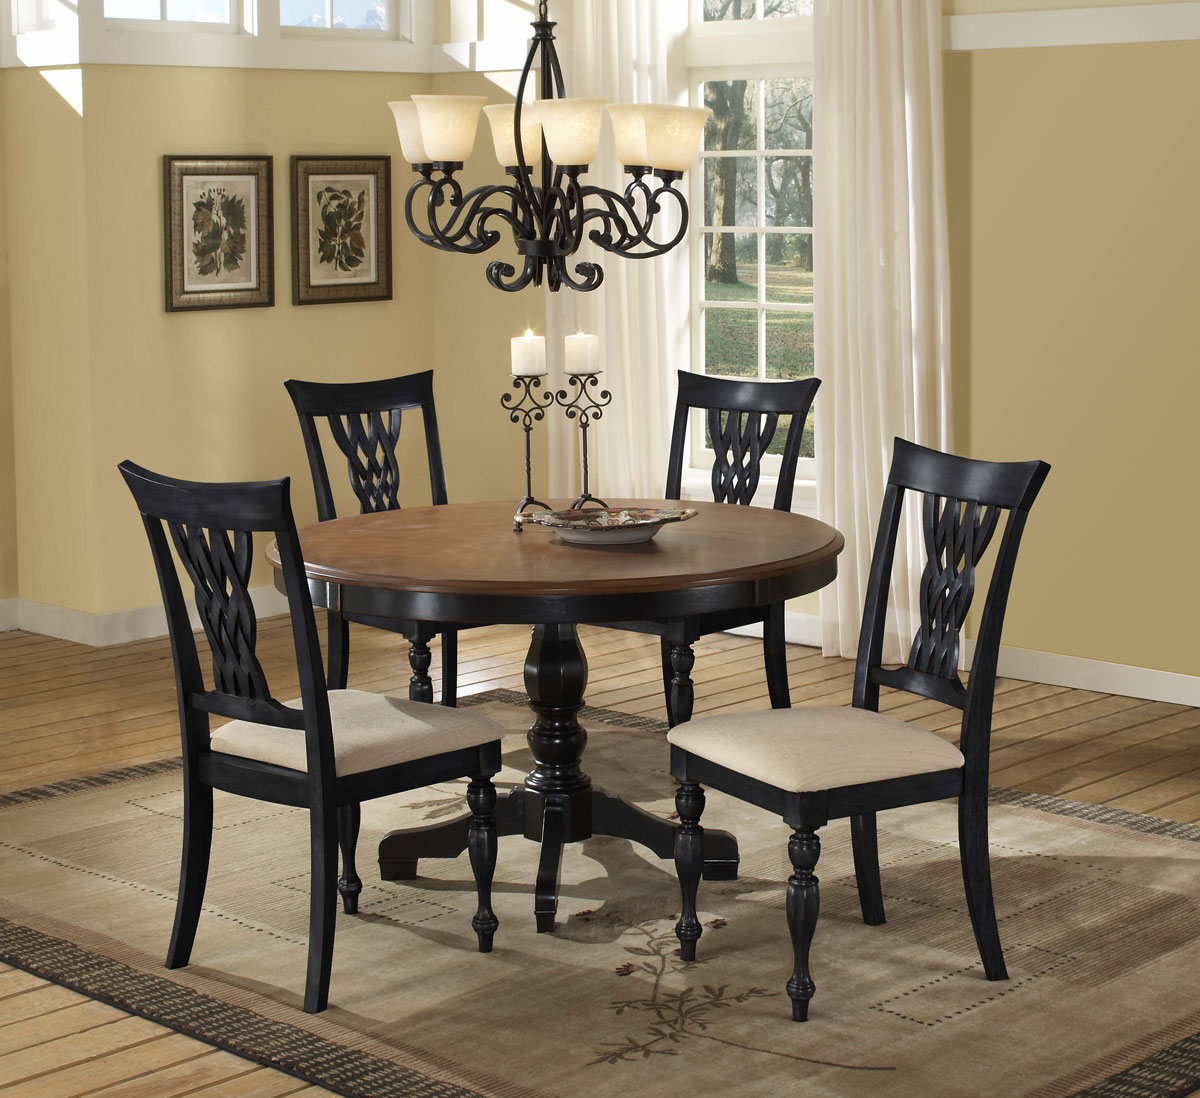 Wooden Round Kitchen Table Small Round Kitchen Table Small Folding Kitchen Table And Chairs